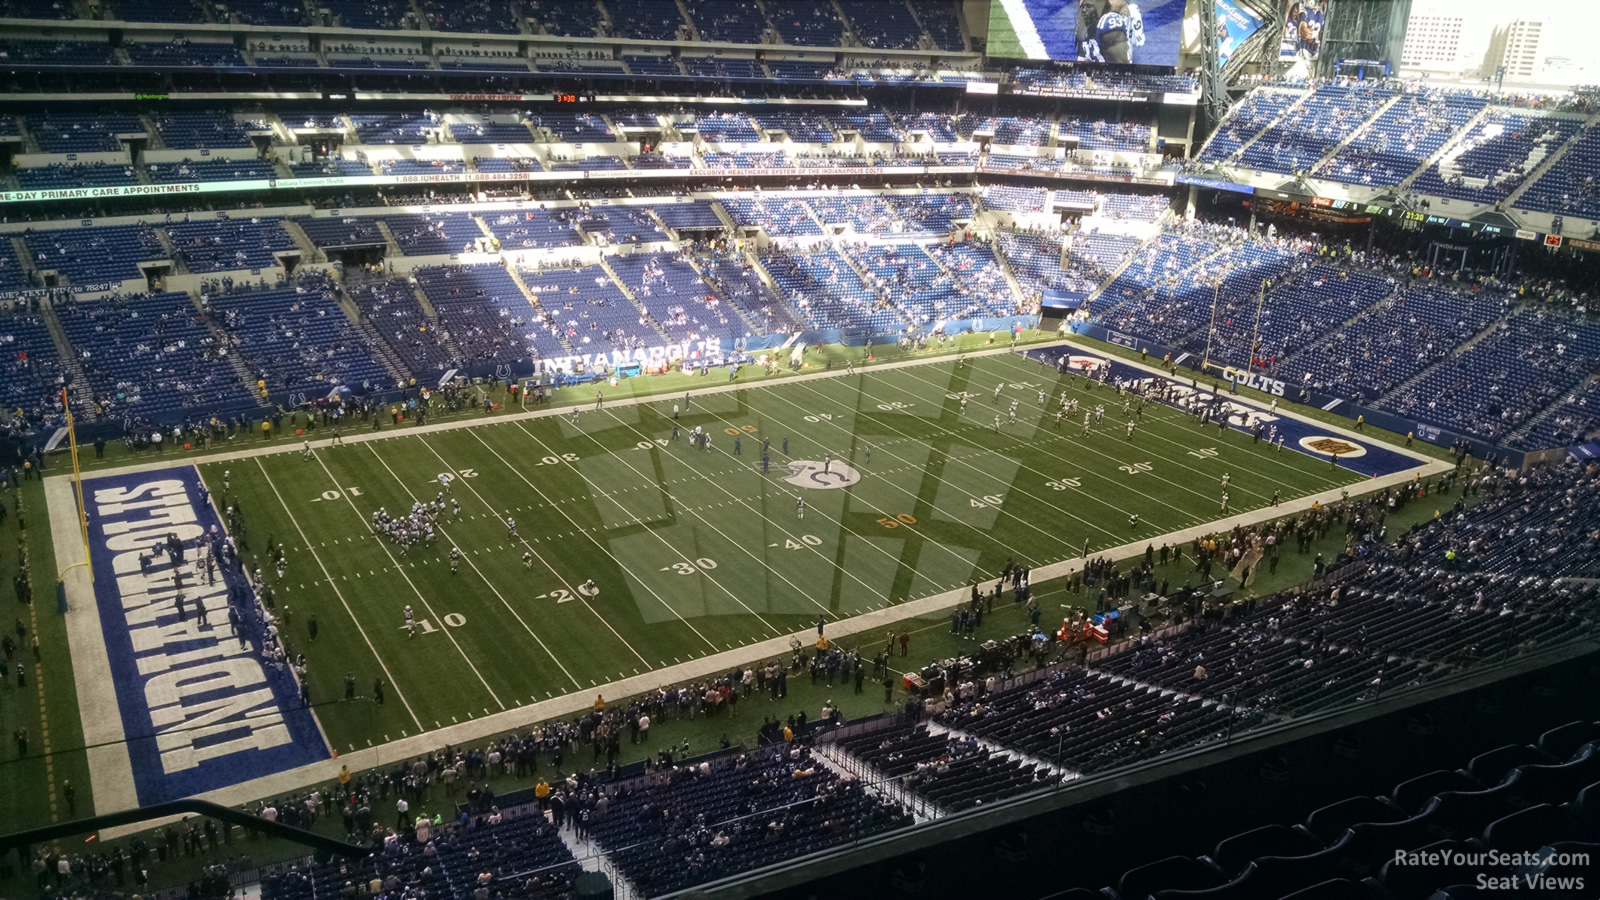 Section 617 seat view